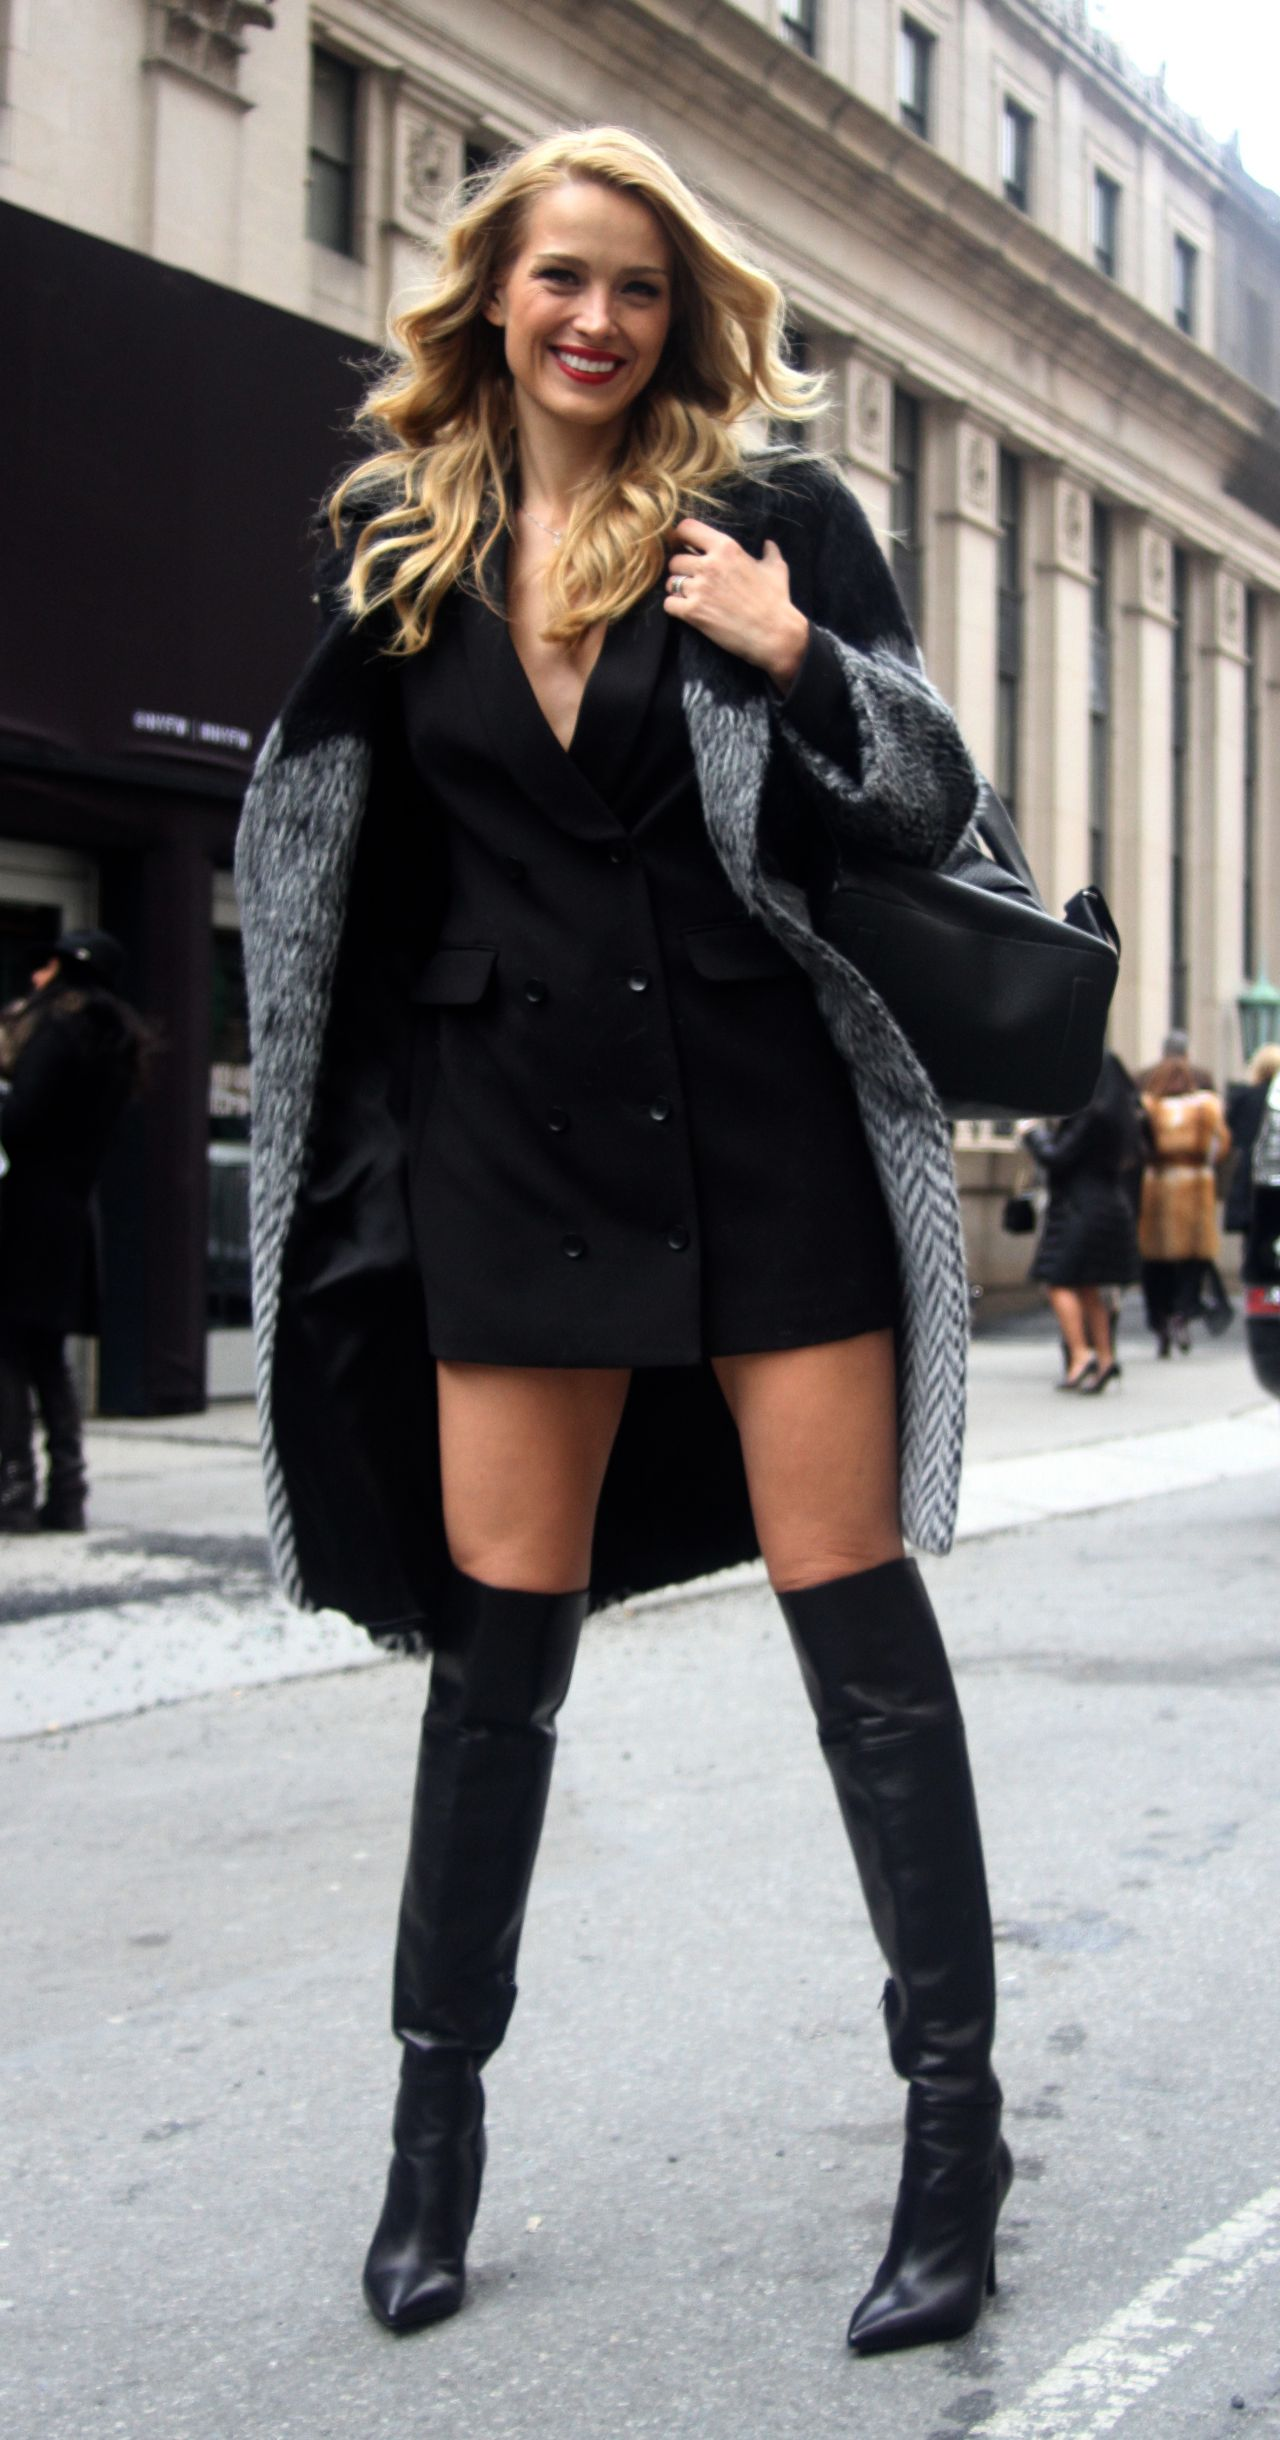 petra-nemcova-style-out-in-manhattan-2-12-2016-12